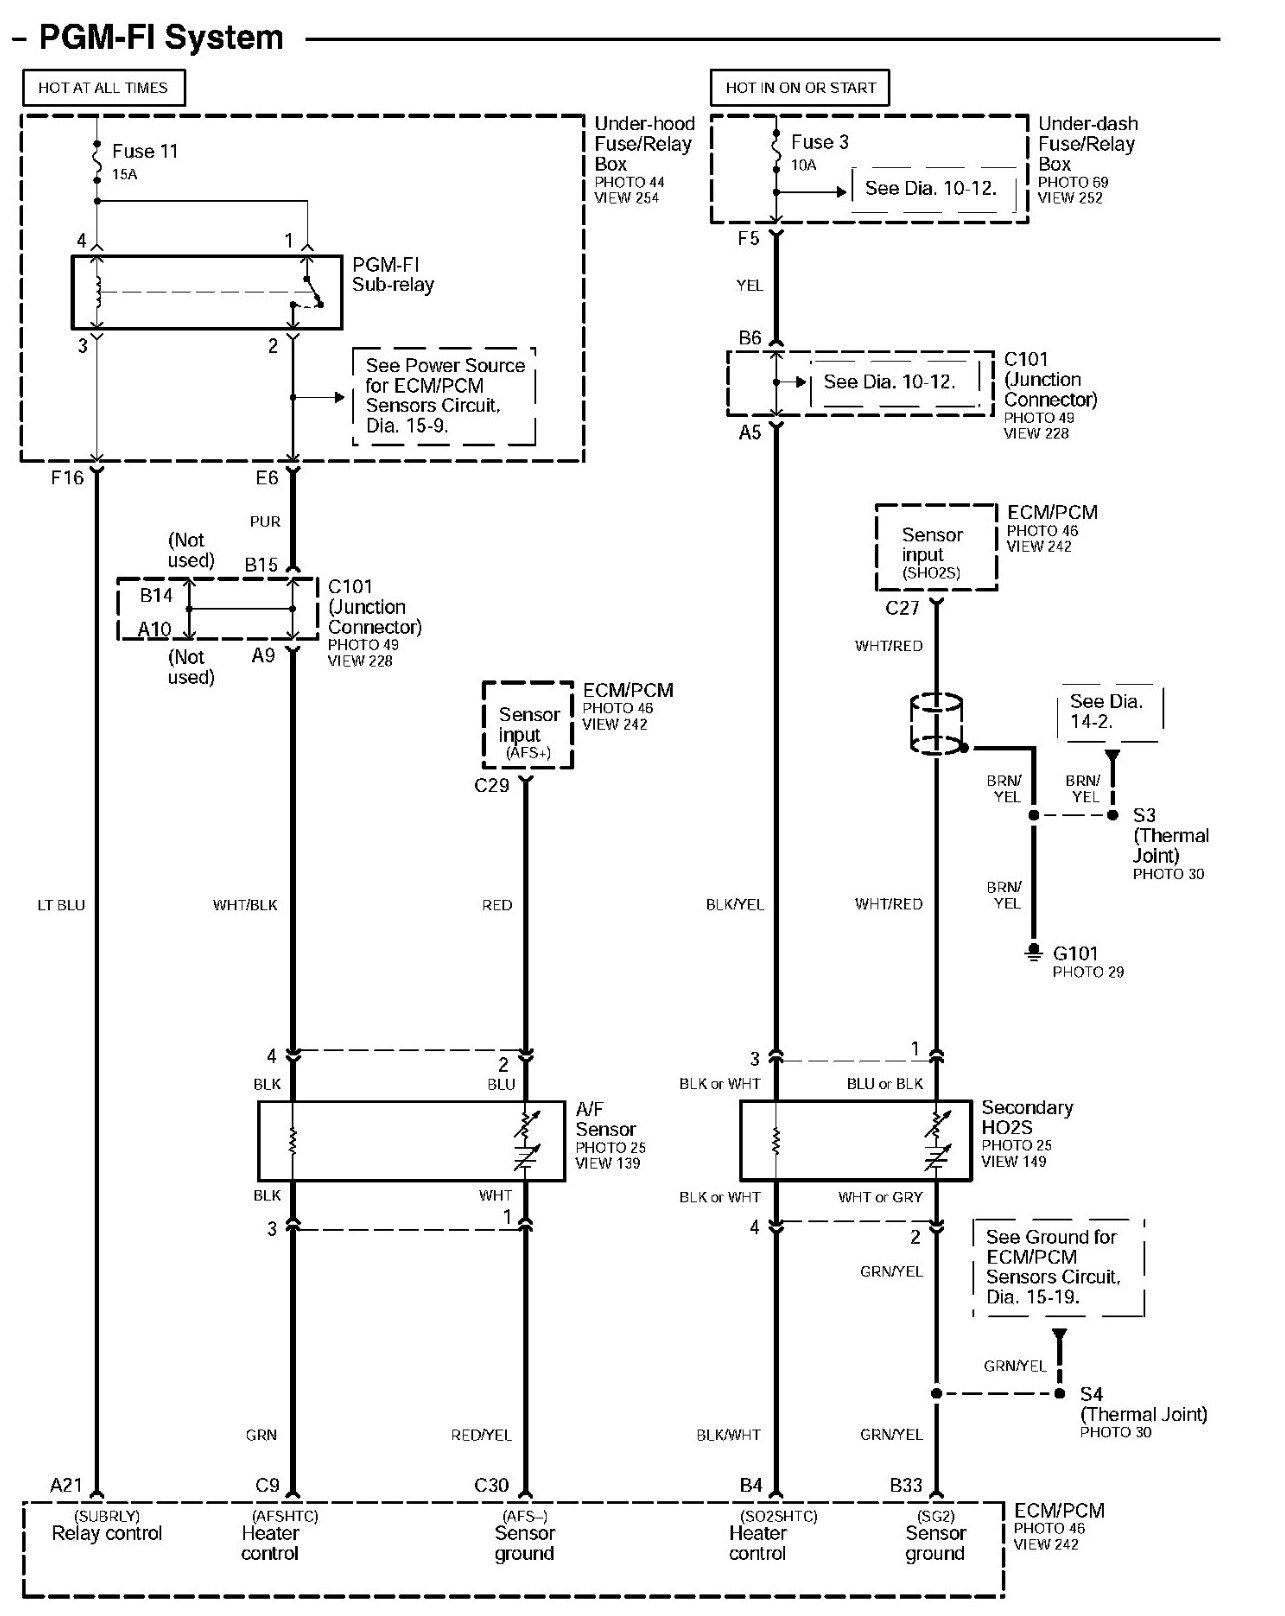 57B8F Honda 02 Sensor Wiring Diagram | Digital Resources on 2000 honda 300ex headlight diagram, headlight wire harness diagram, honda civic wiring schematics, relay wiring diagram, three prong plug diagram, mazda 3 headlight assembly diagram, honda motorcycle headlight circuit diagram, honda cbr600rr wiring-diagram,